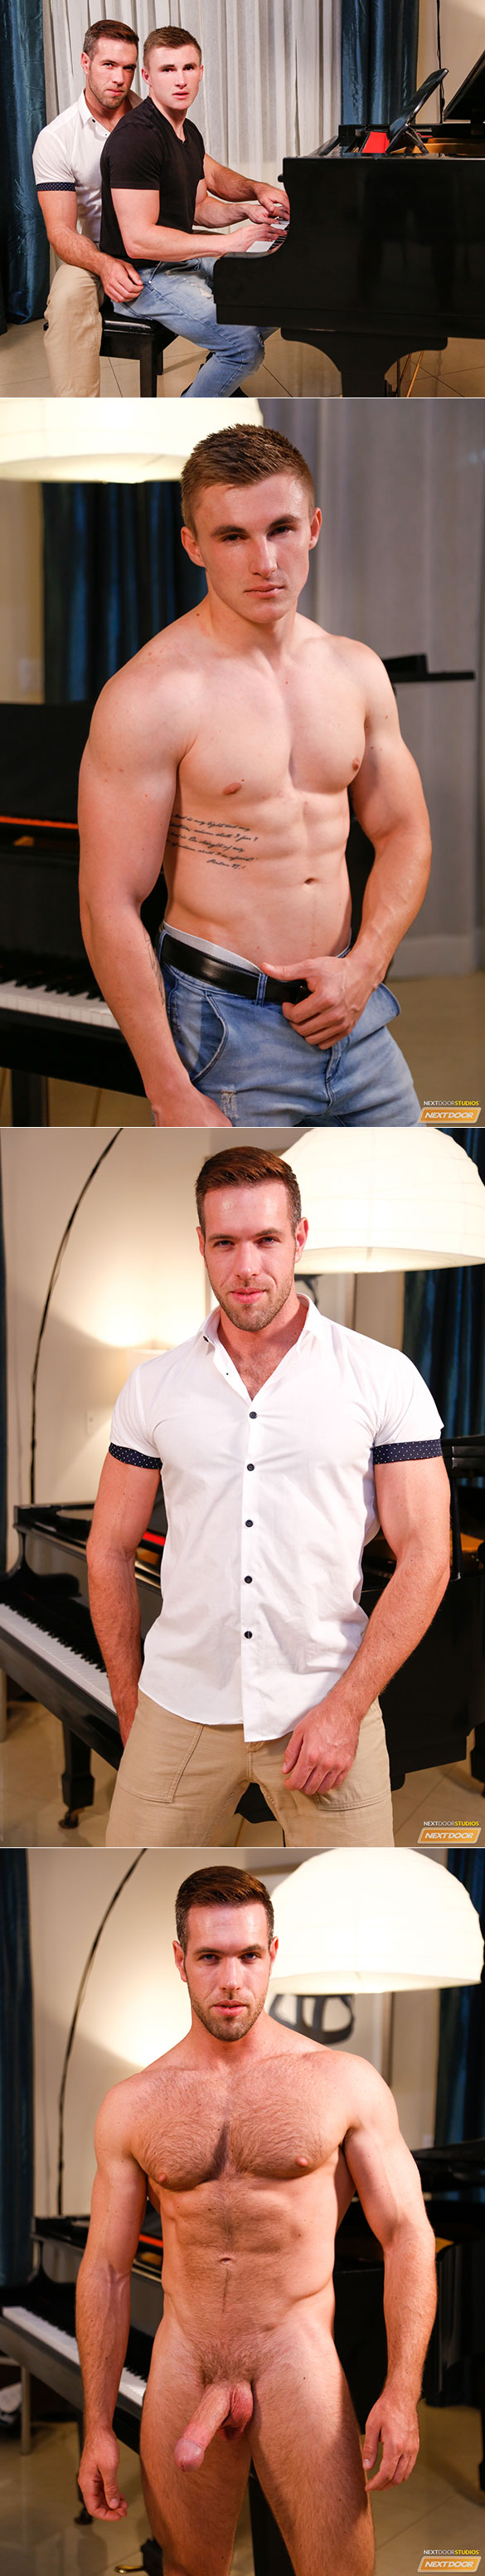 "Next Door Studios: Jake Davis takes Alex Mecum's big cock in ""The Piano Teacher"""